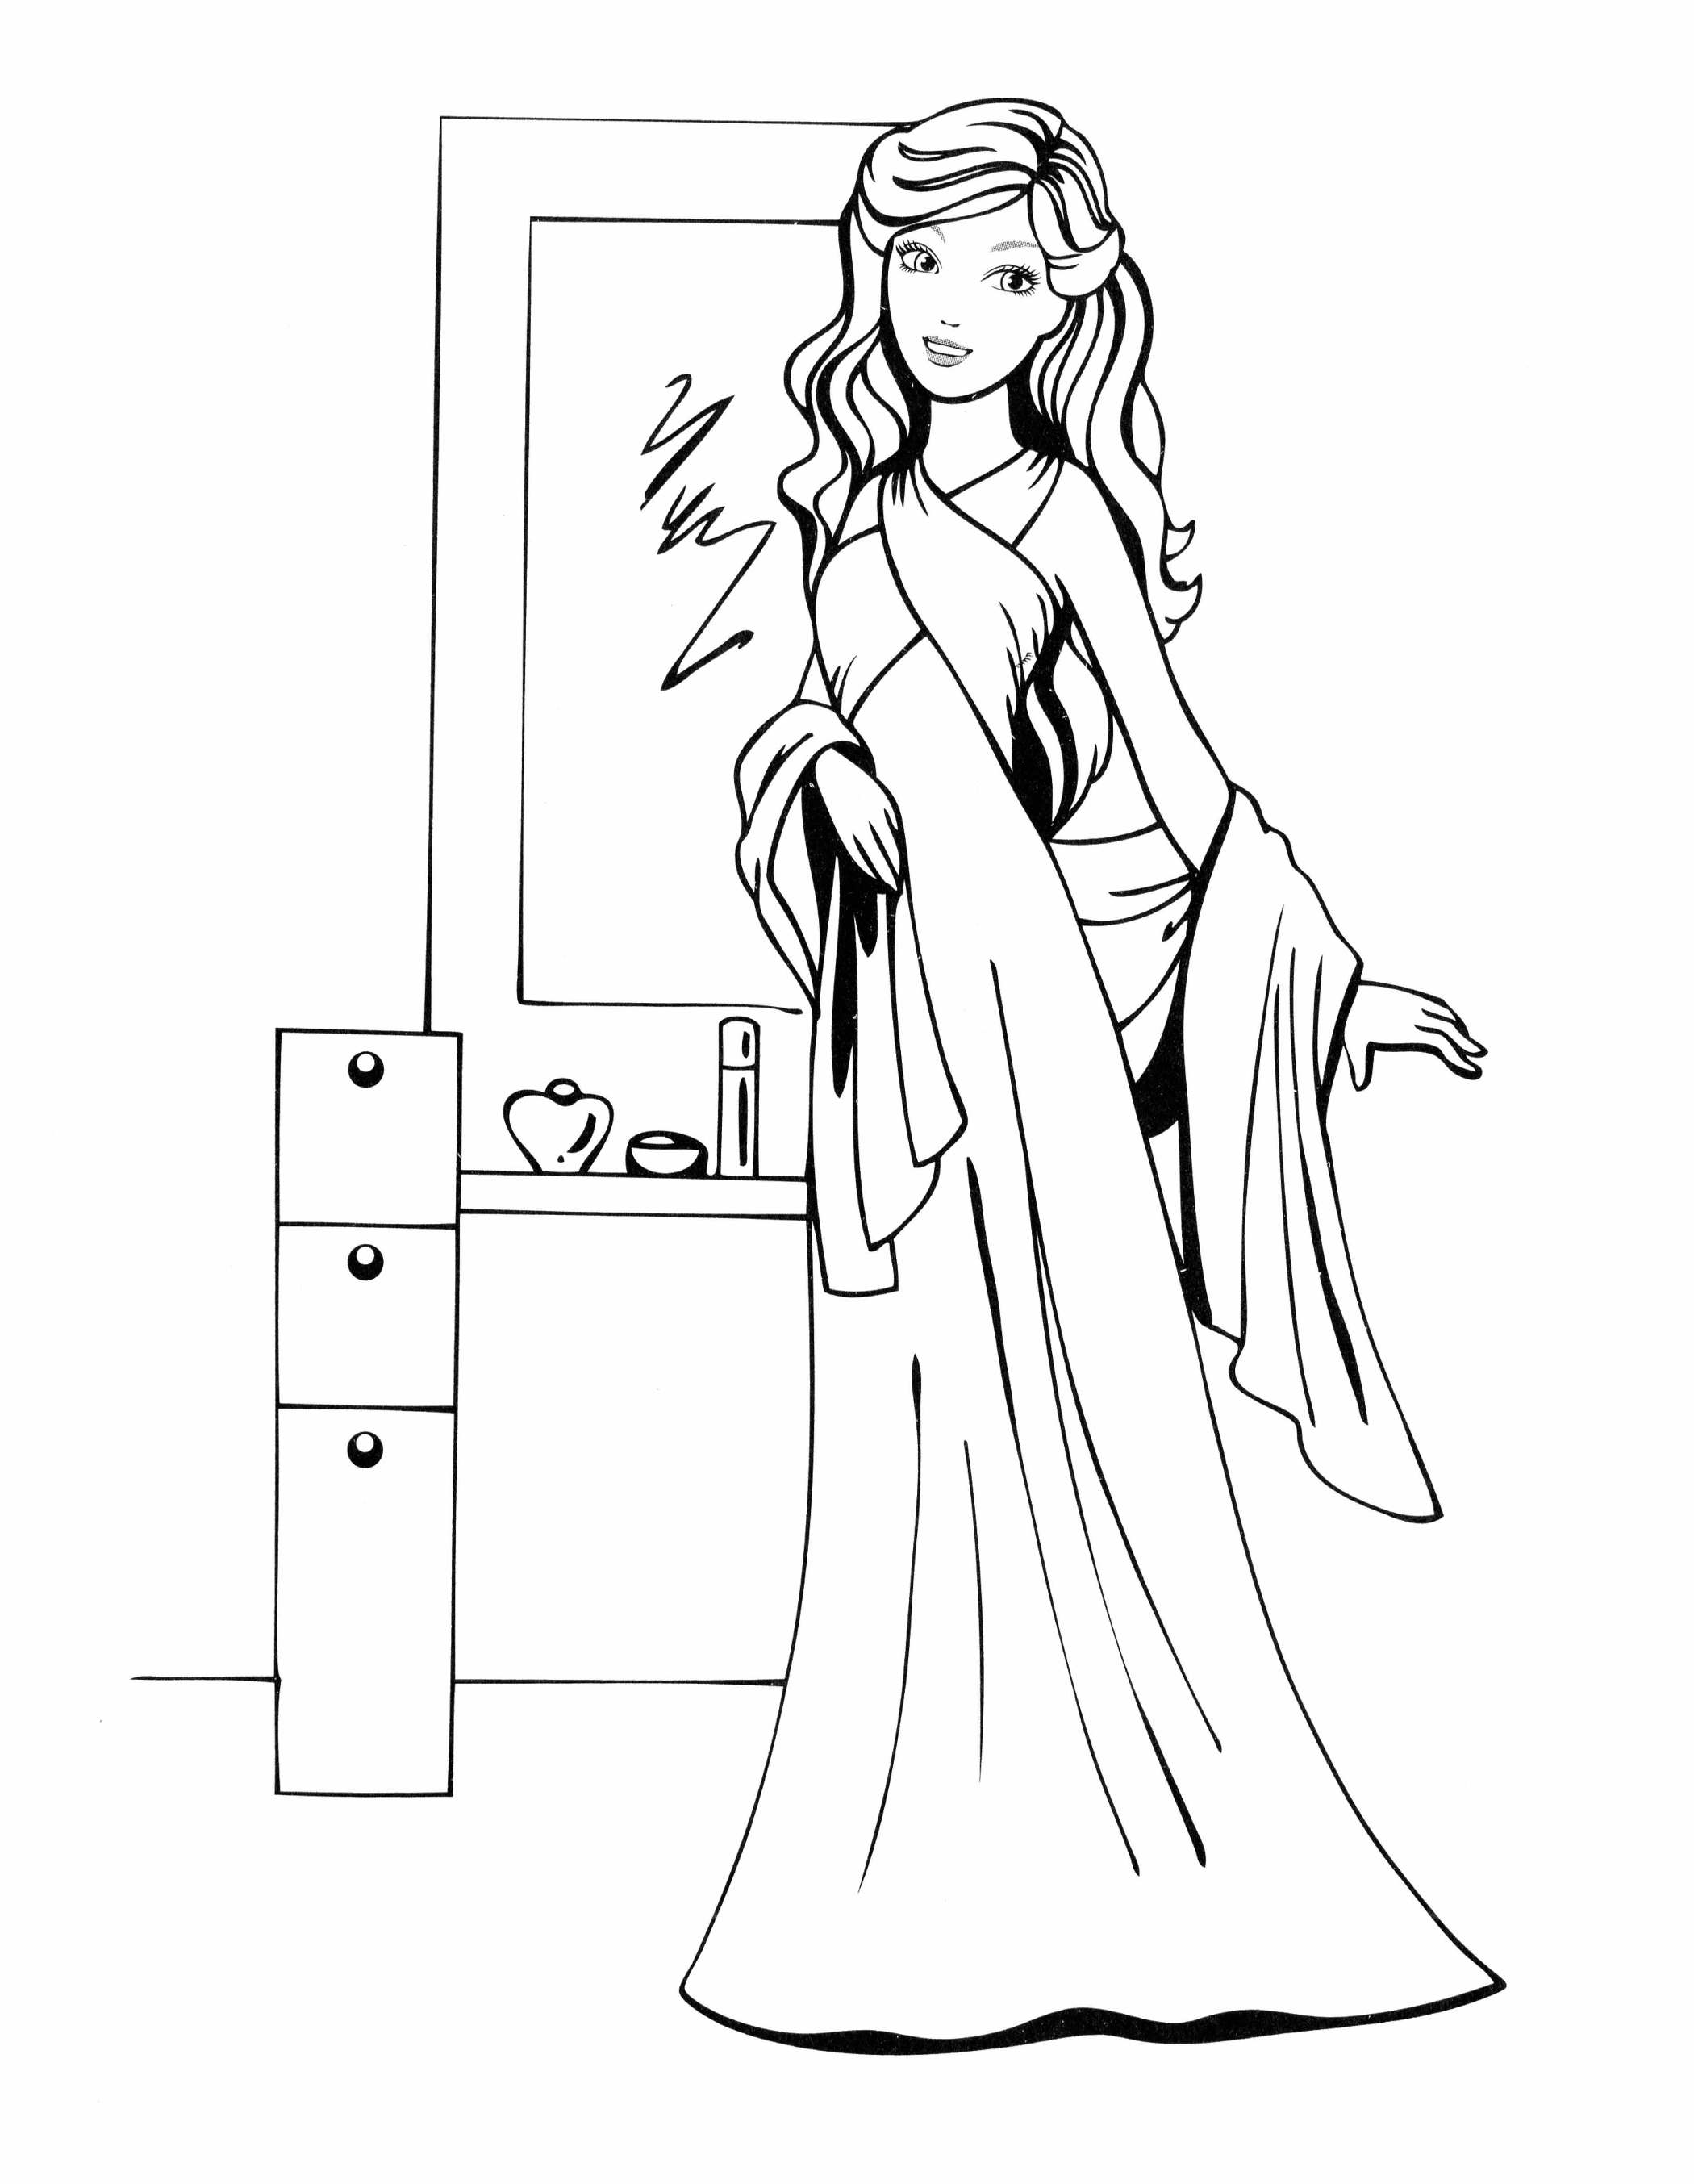 coloring pages 9 year old coloring pages for 8910 year old girls to download and 9 year coloring pages old